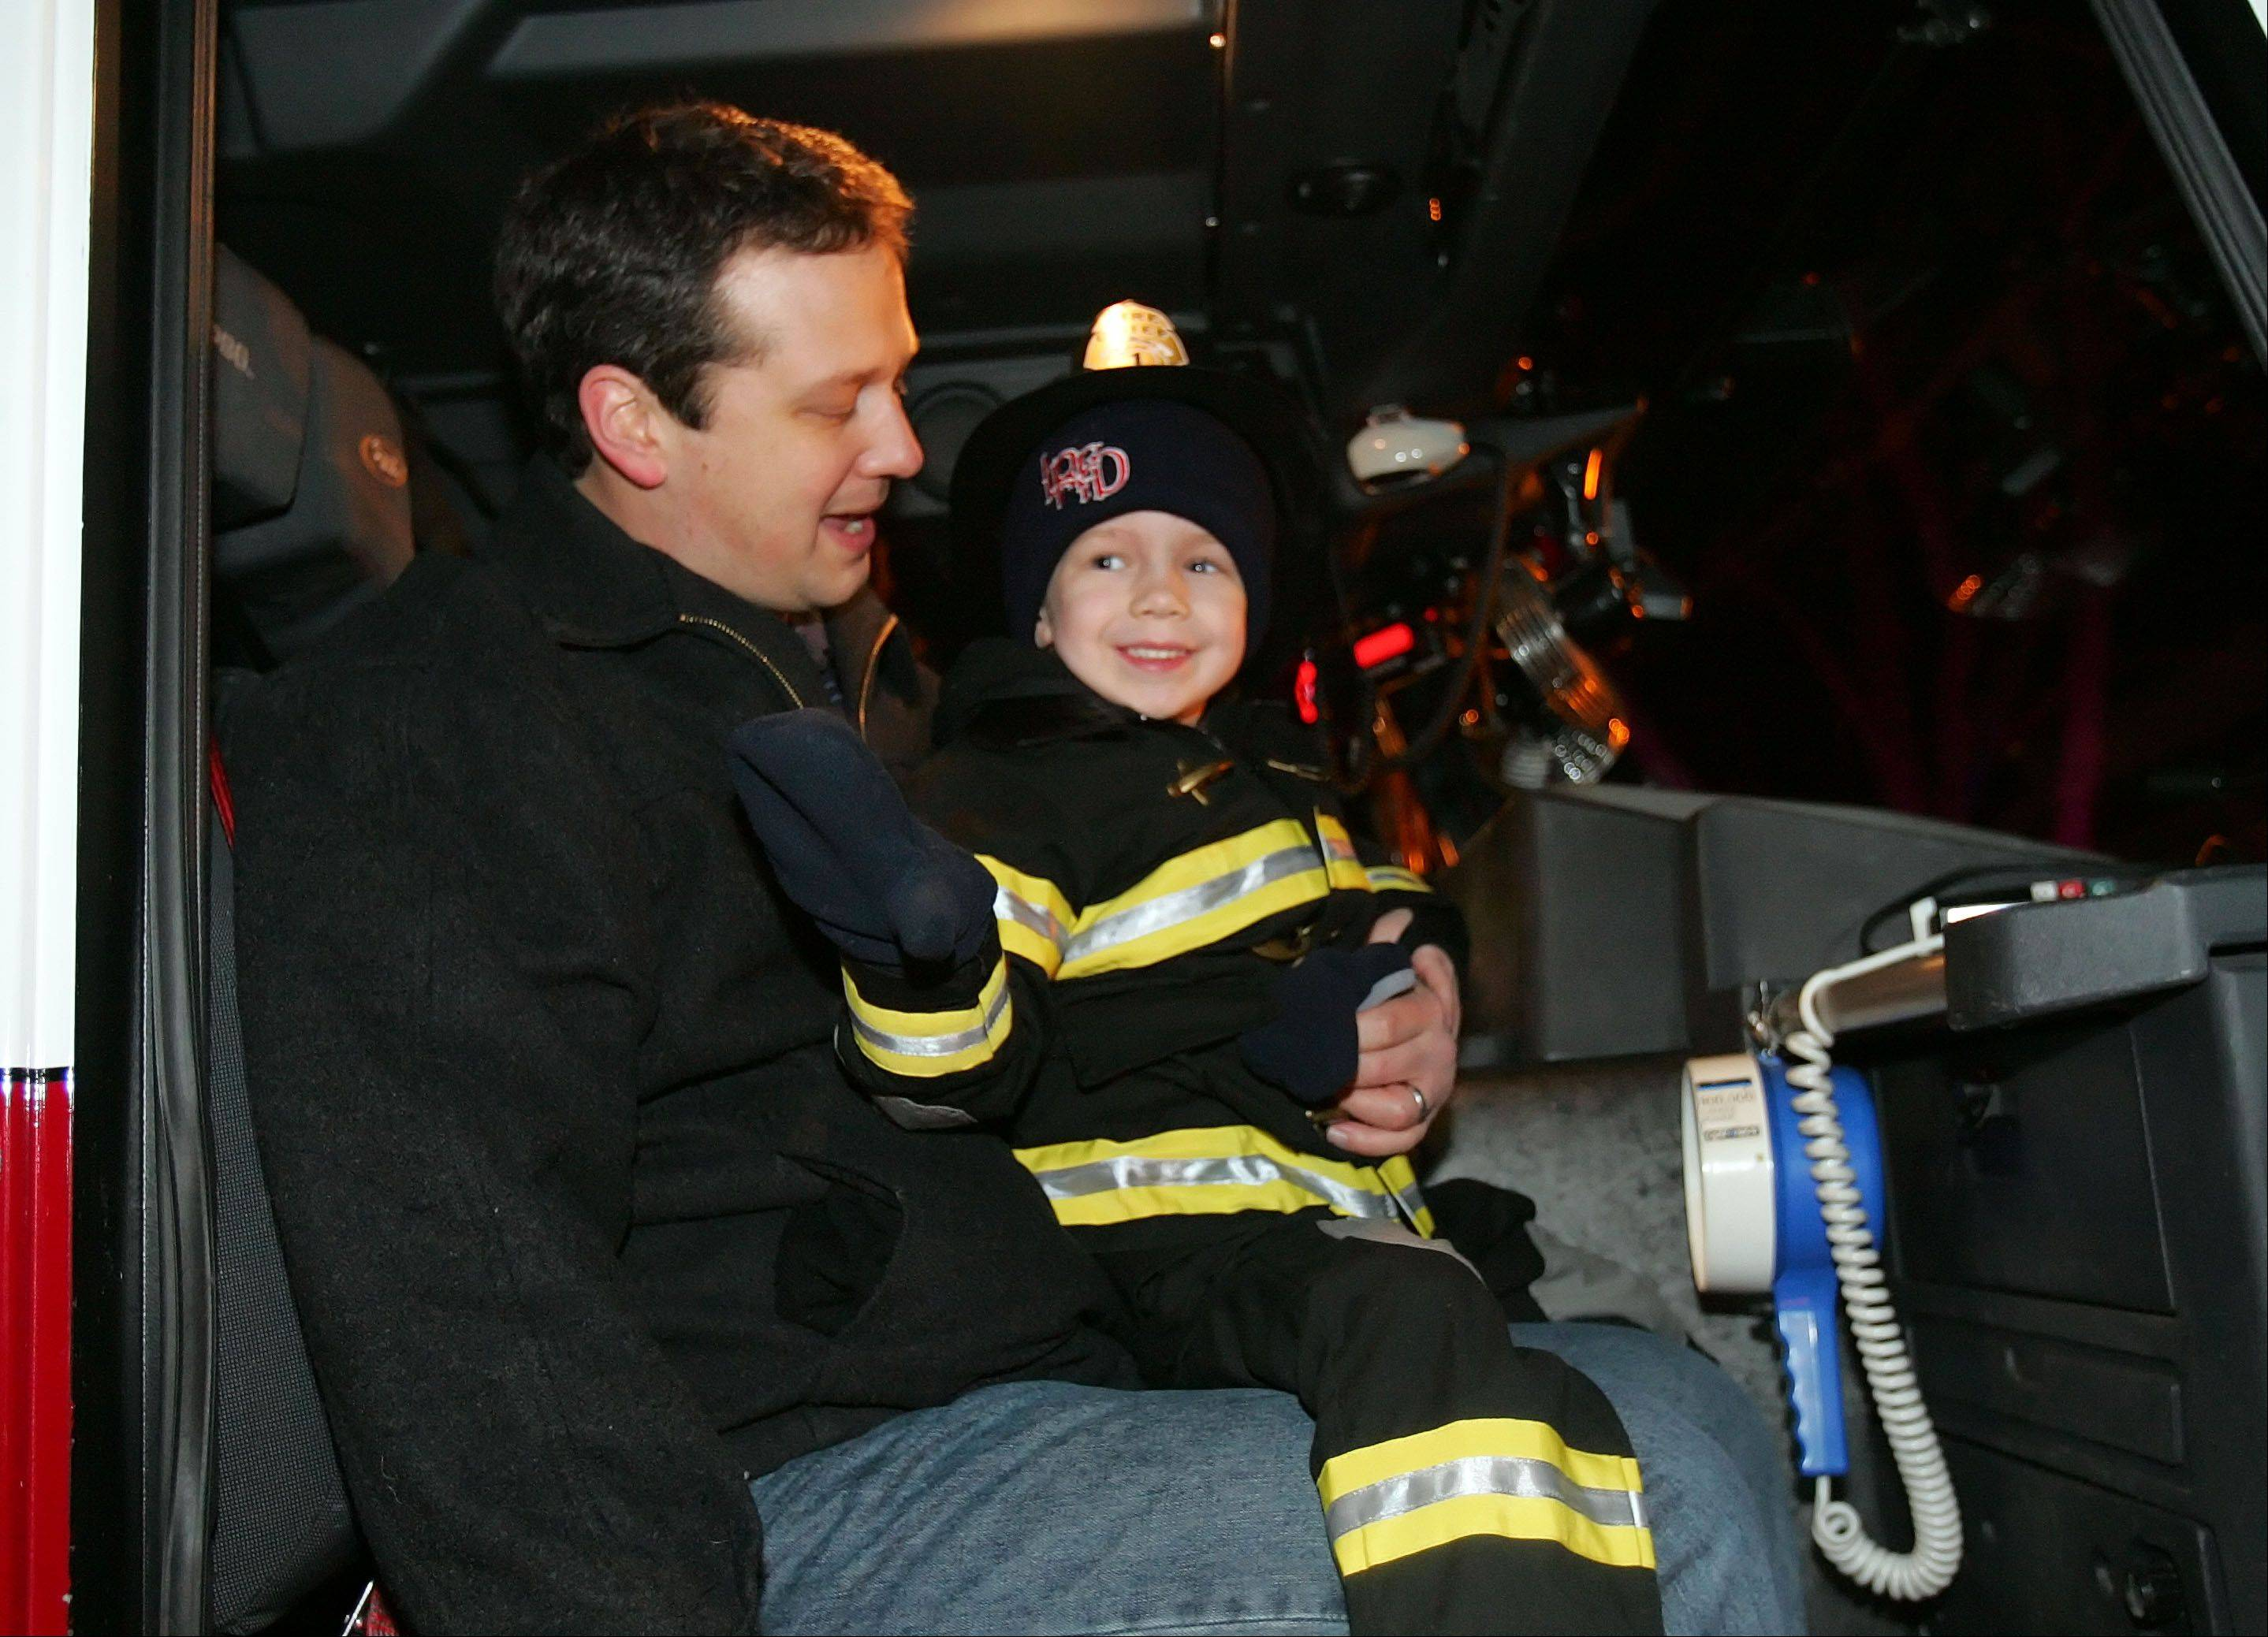 Four-year-old Connor Johnson of Libertyville waves to family members and friends as he gets ready for a ride on a fire truck with his father, Mike Johnson, Monday night in Libertyville. Firefighters and police officers from a dozen or more jurisdictions were on a special call, a grand show of support for Connor, who suffers from an aggressive and rare form of brain cancer.